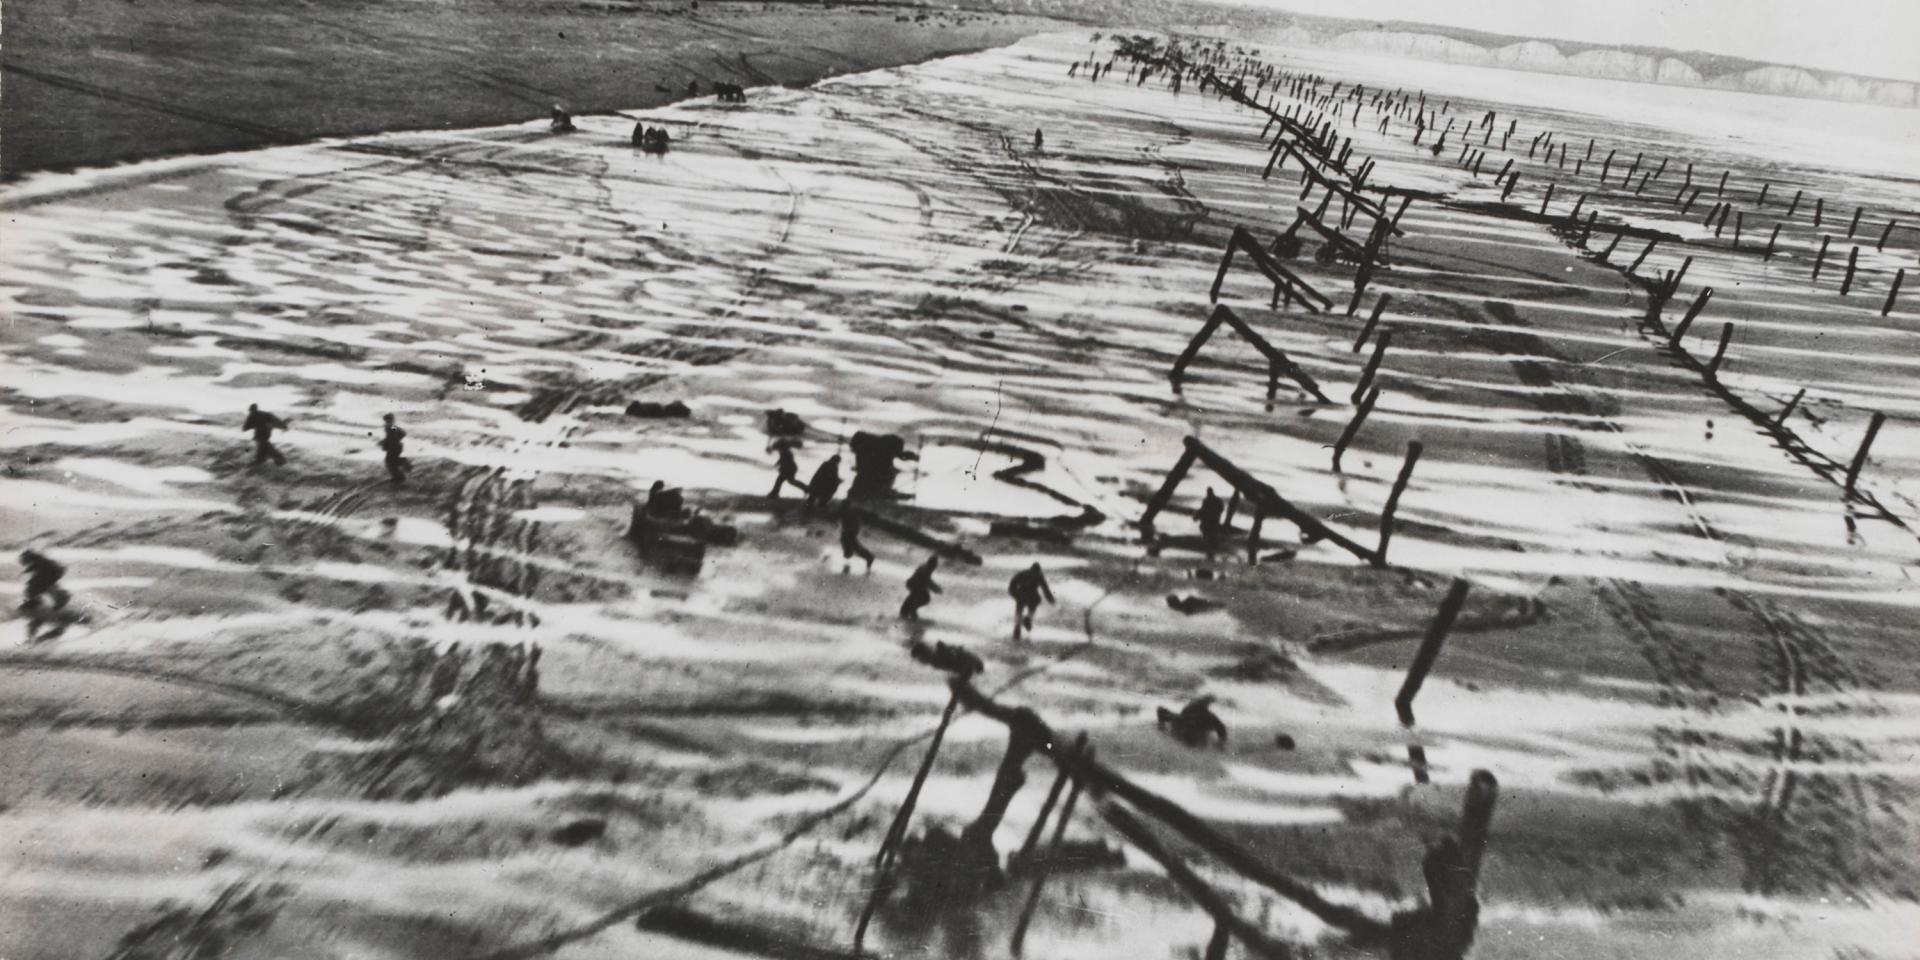 Aerial reconnaissance photograph of French coastal defences, 1944